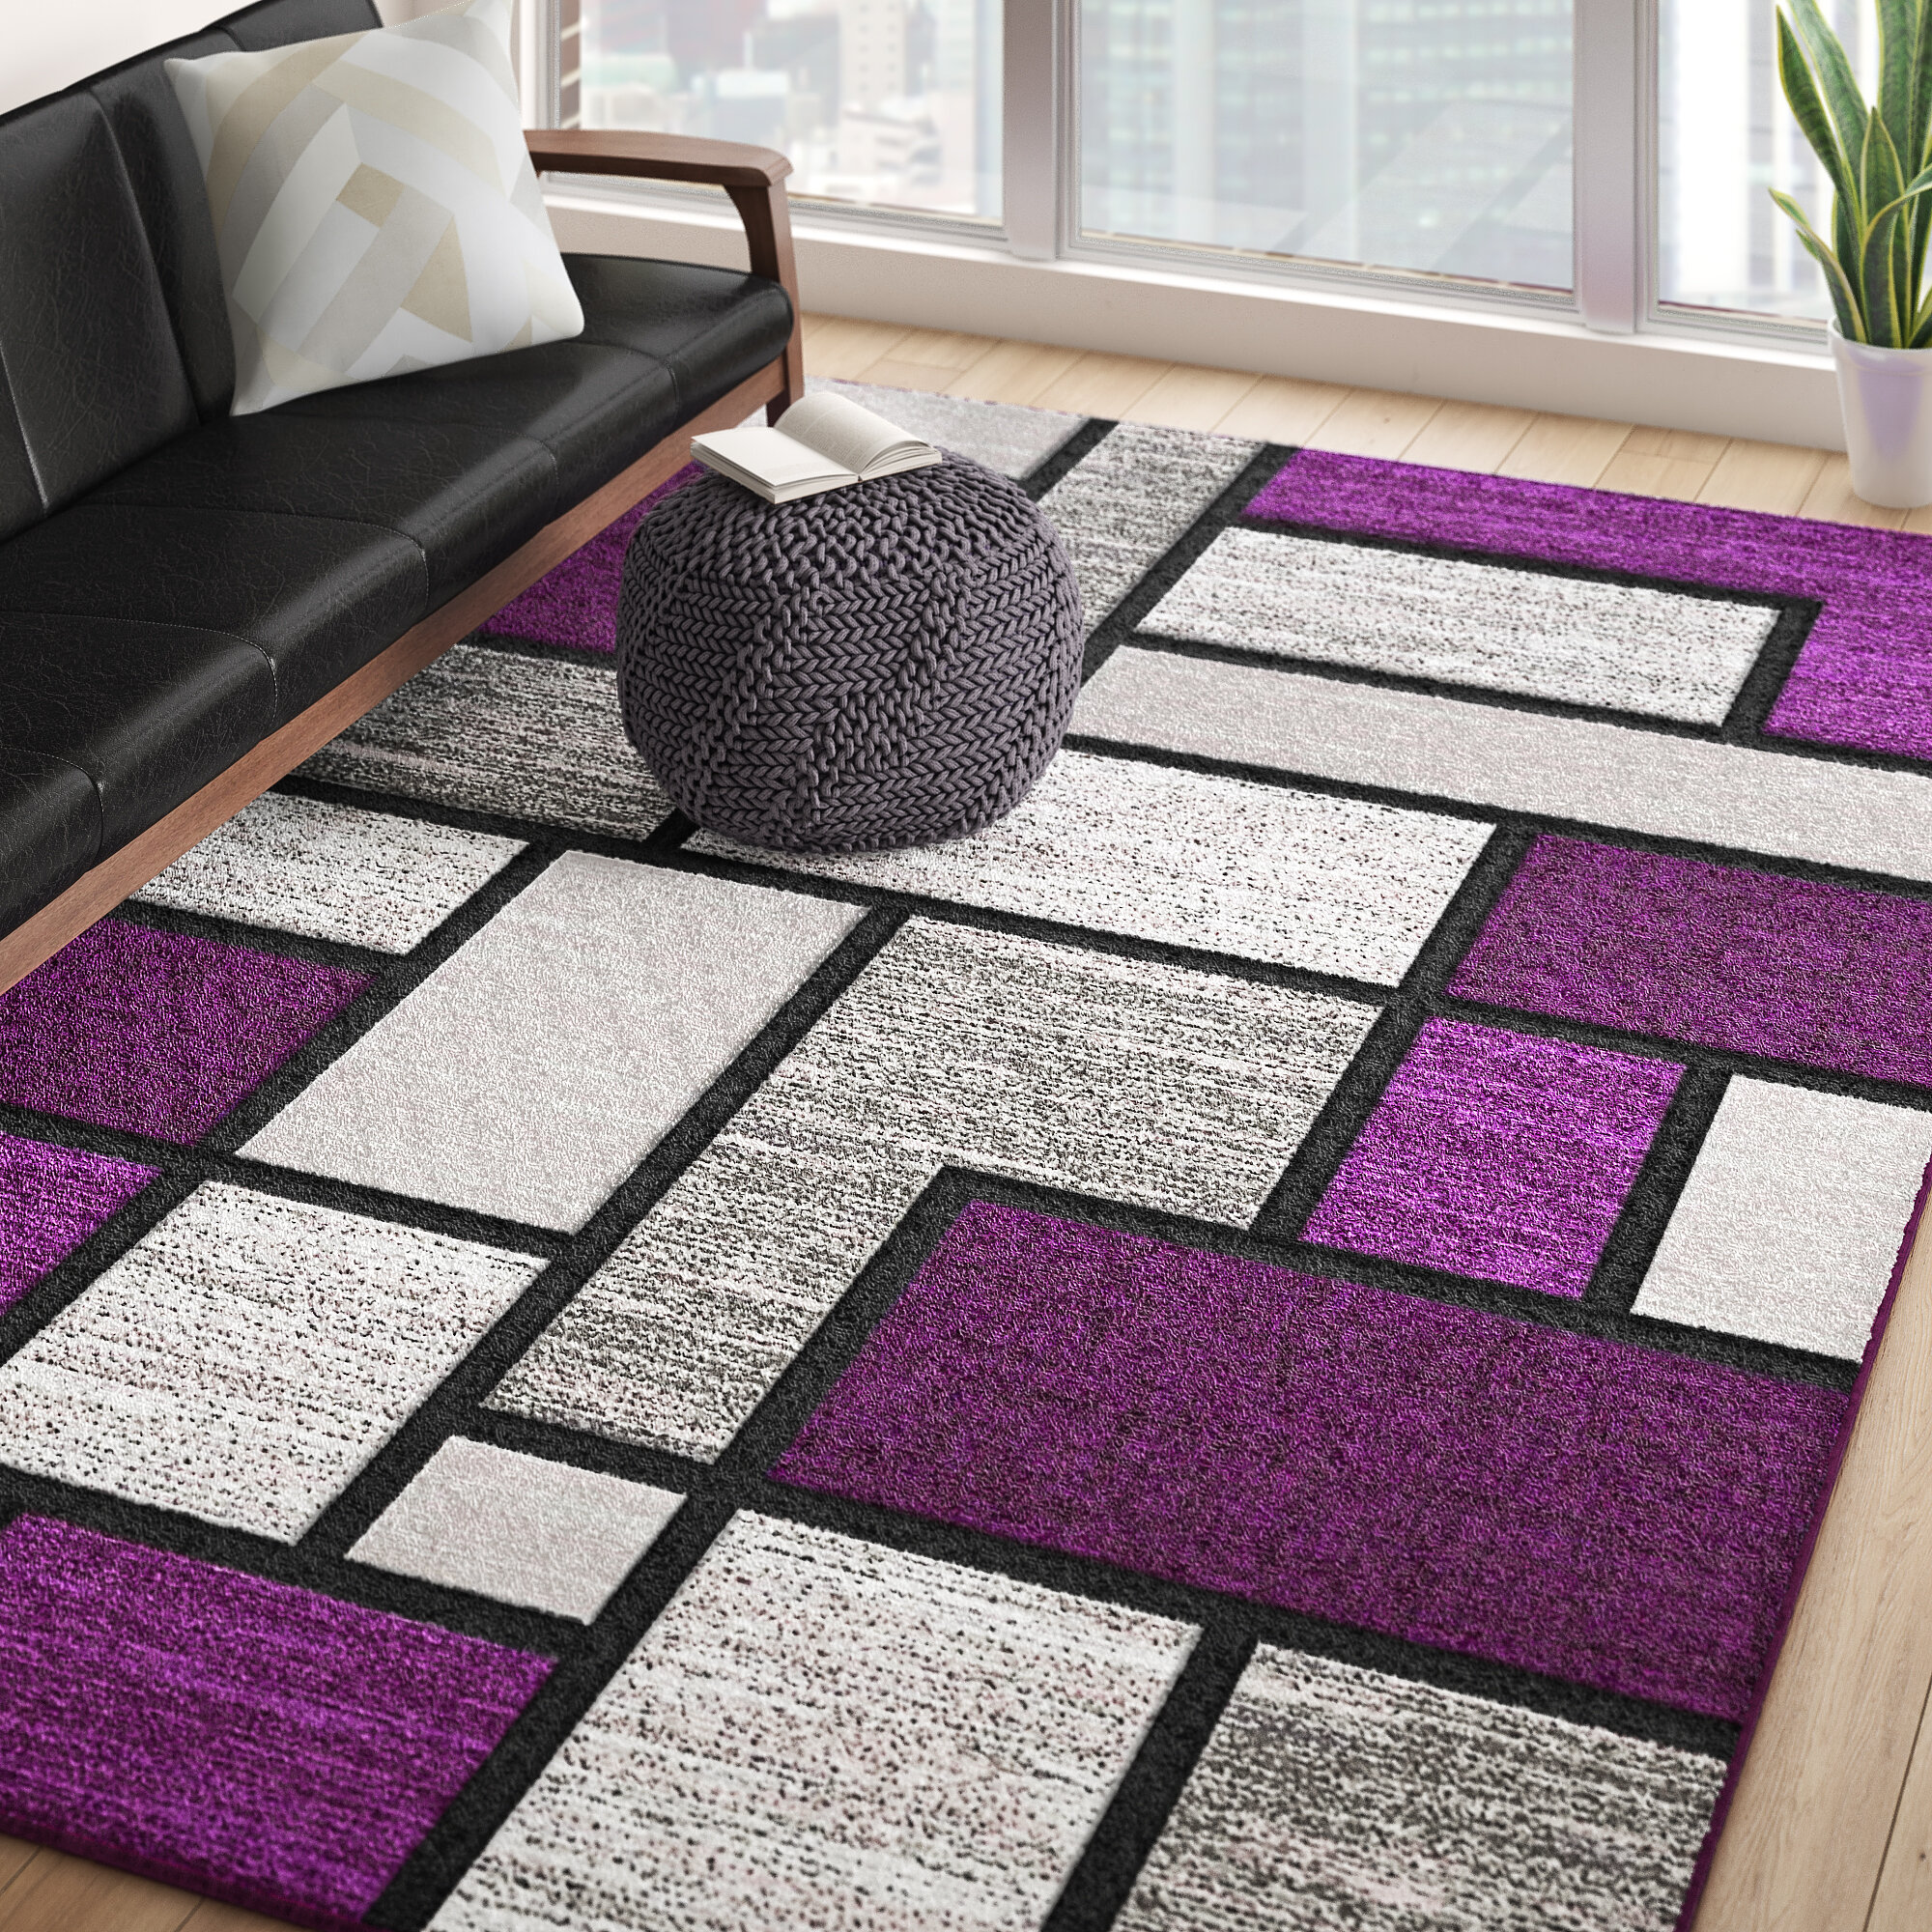 8 X 10 Purple Area Rugs You Ll Love In 2021 Wayfair